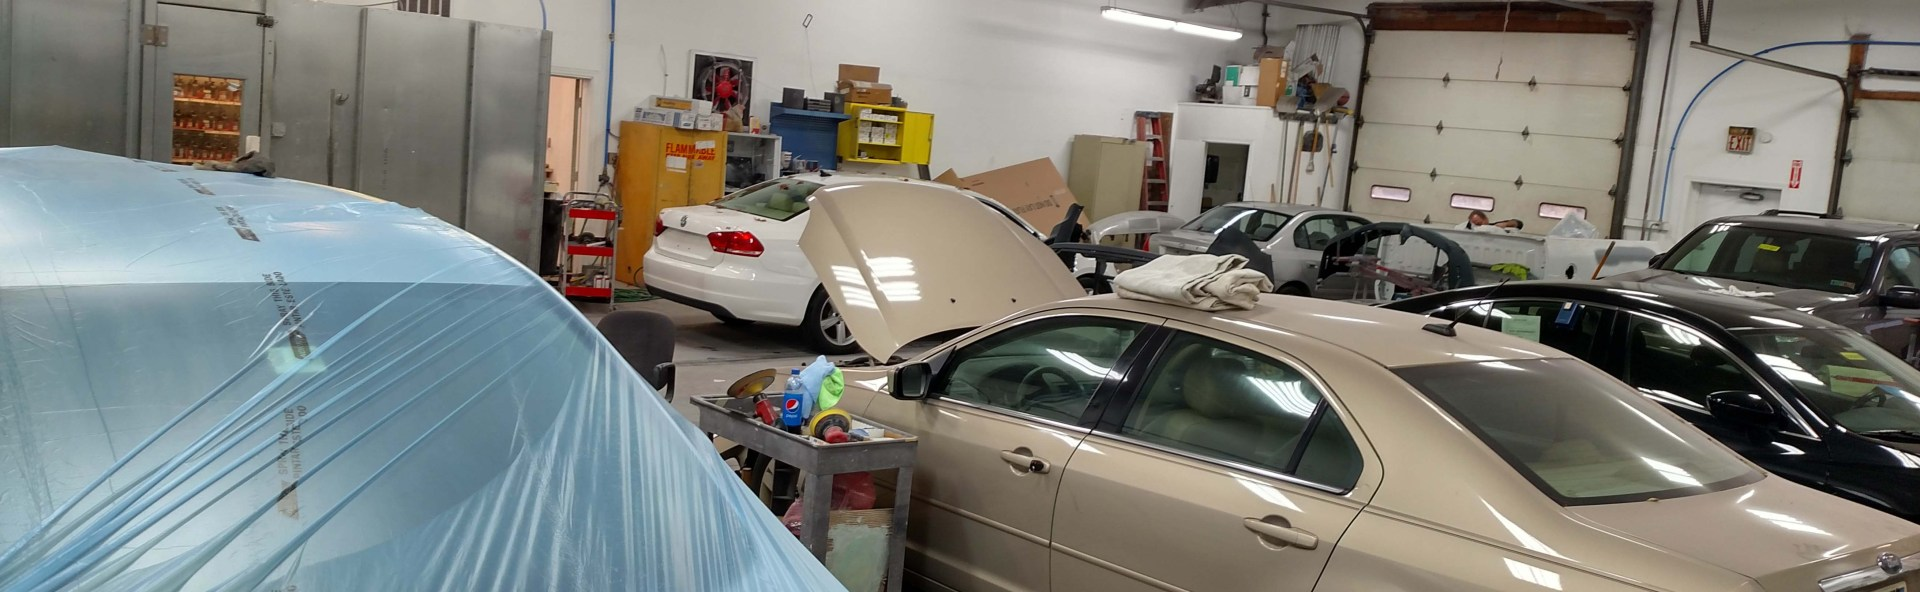 cars_in_shops